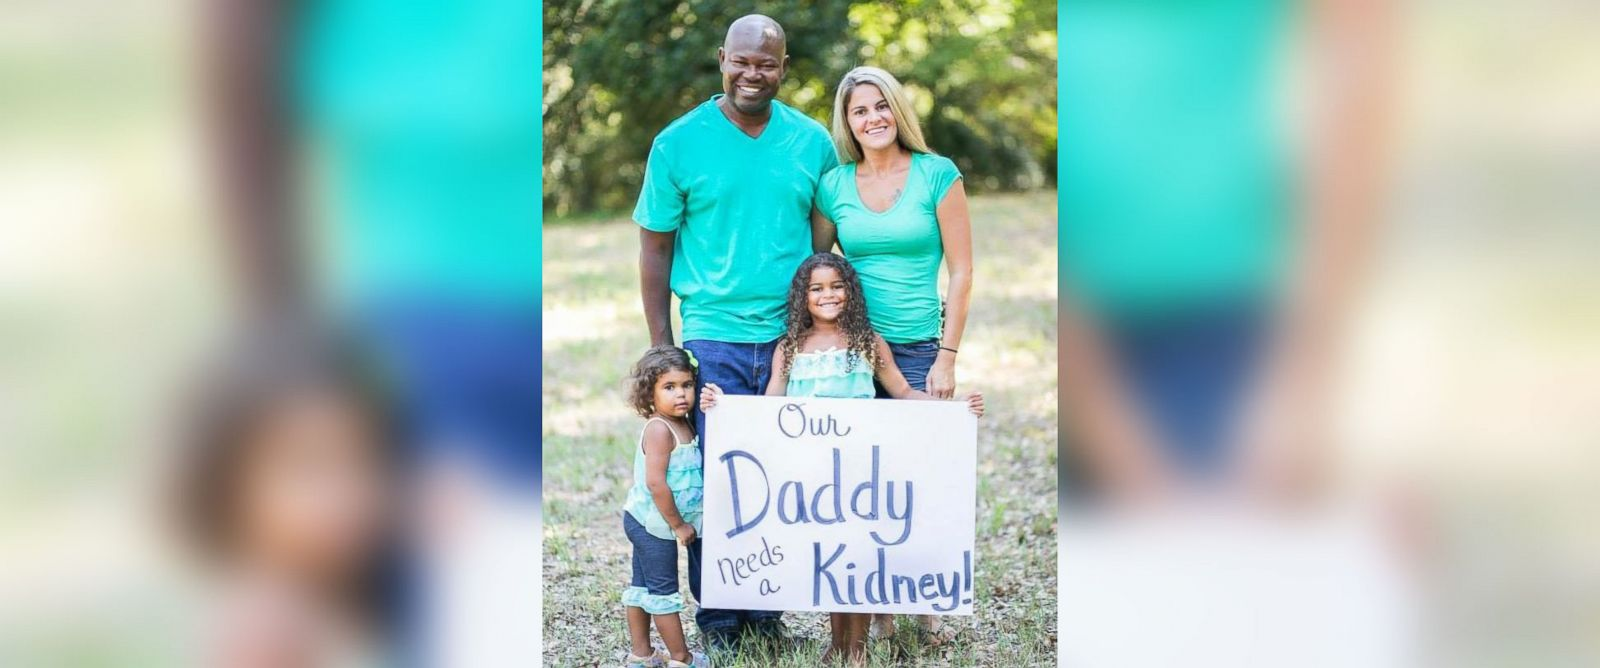 PHOTO: Kristi Callaway used social media to help find a kidney donor for her husband, Raleigh Callaway.